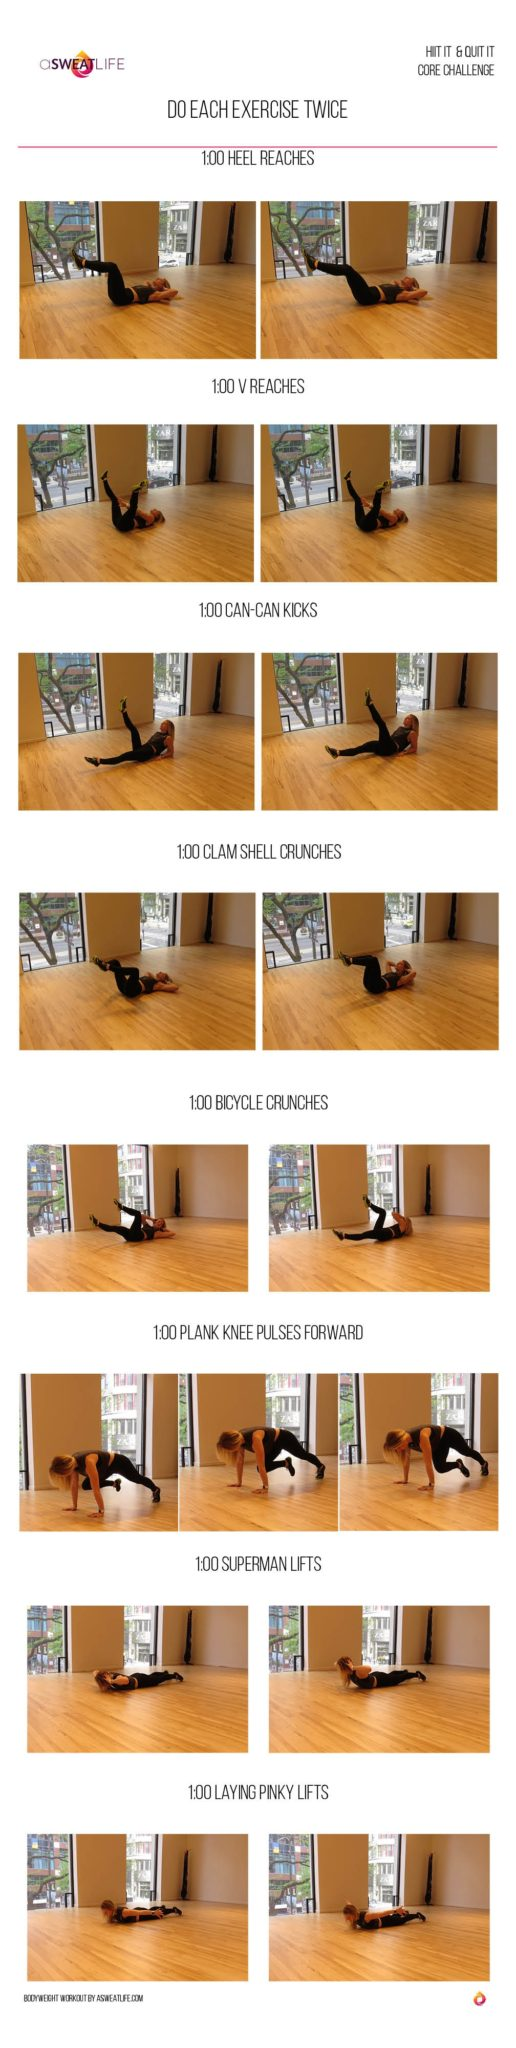 asweatlife_This Core Workout is Just in Time for Summer_15 05 20